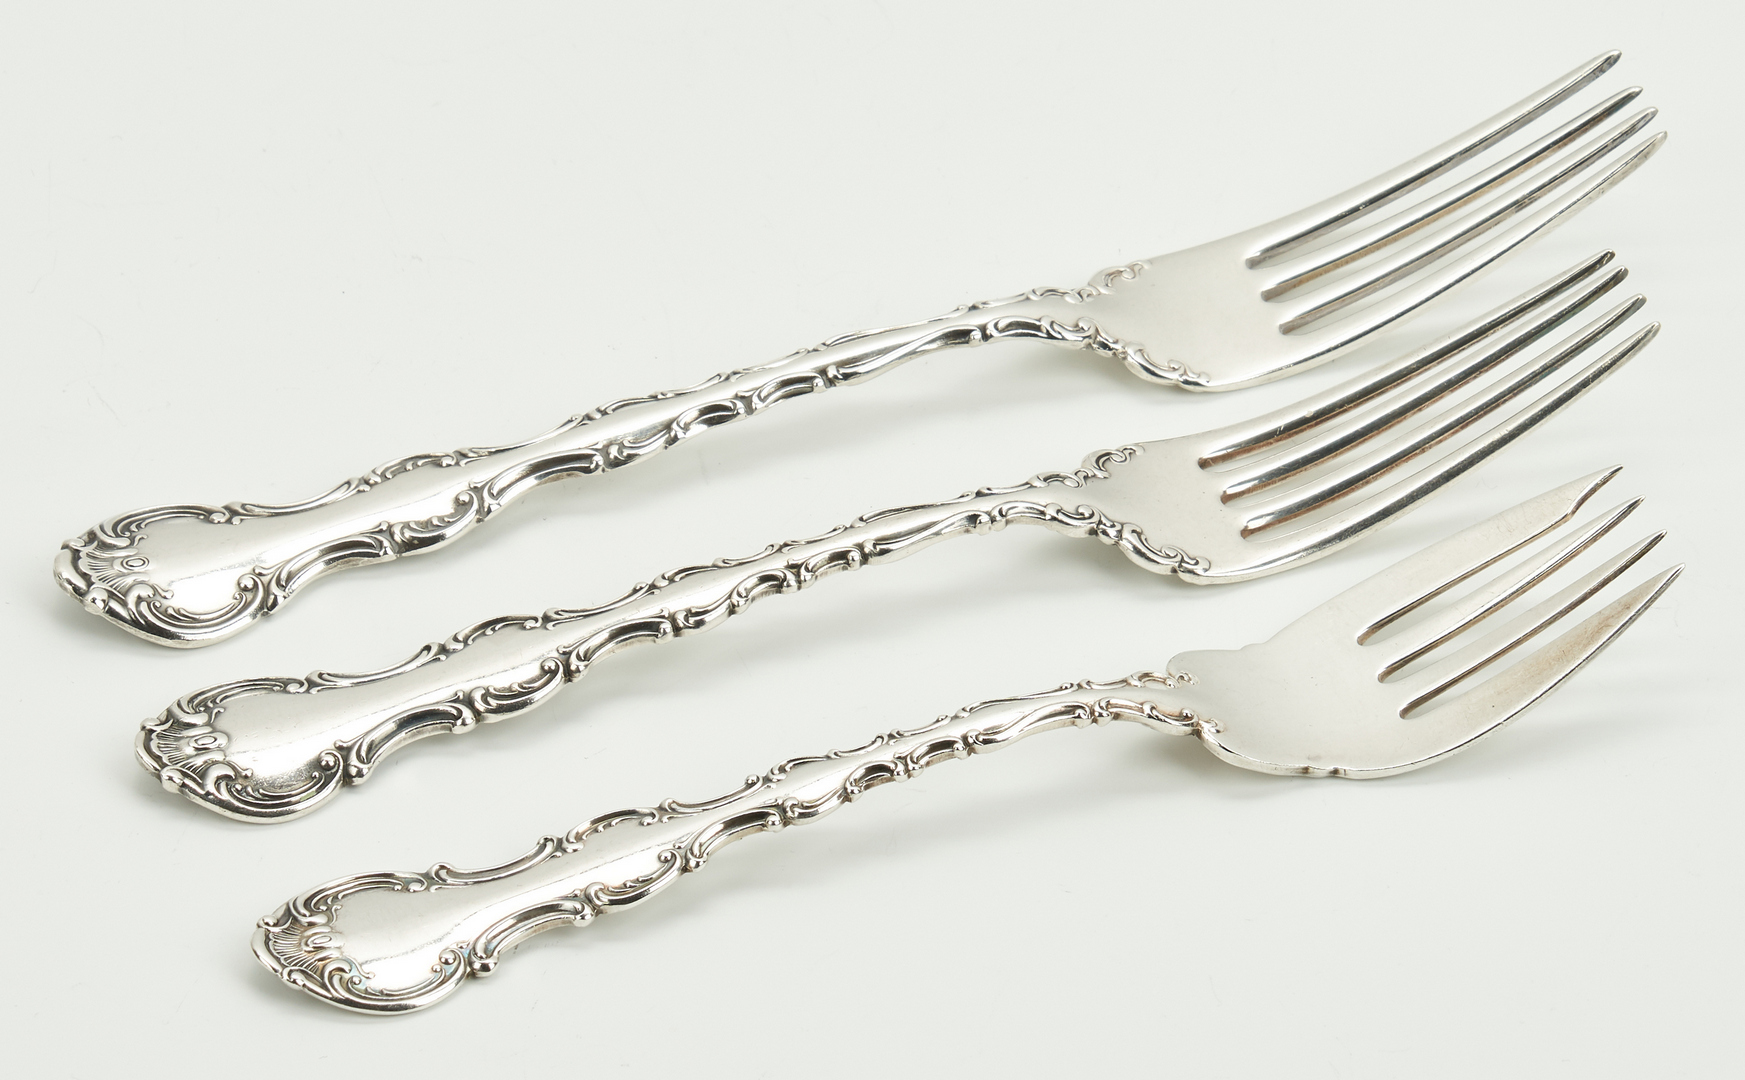 Lot 240: 100 pcs. Gorham Strasbourg and Whiting Louis XV Sterling Flatware